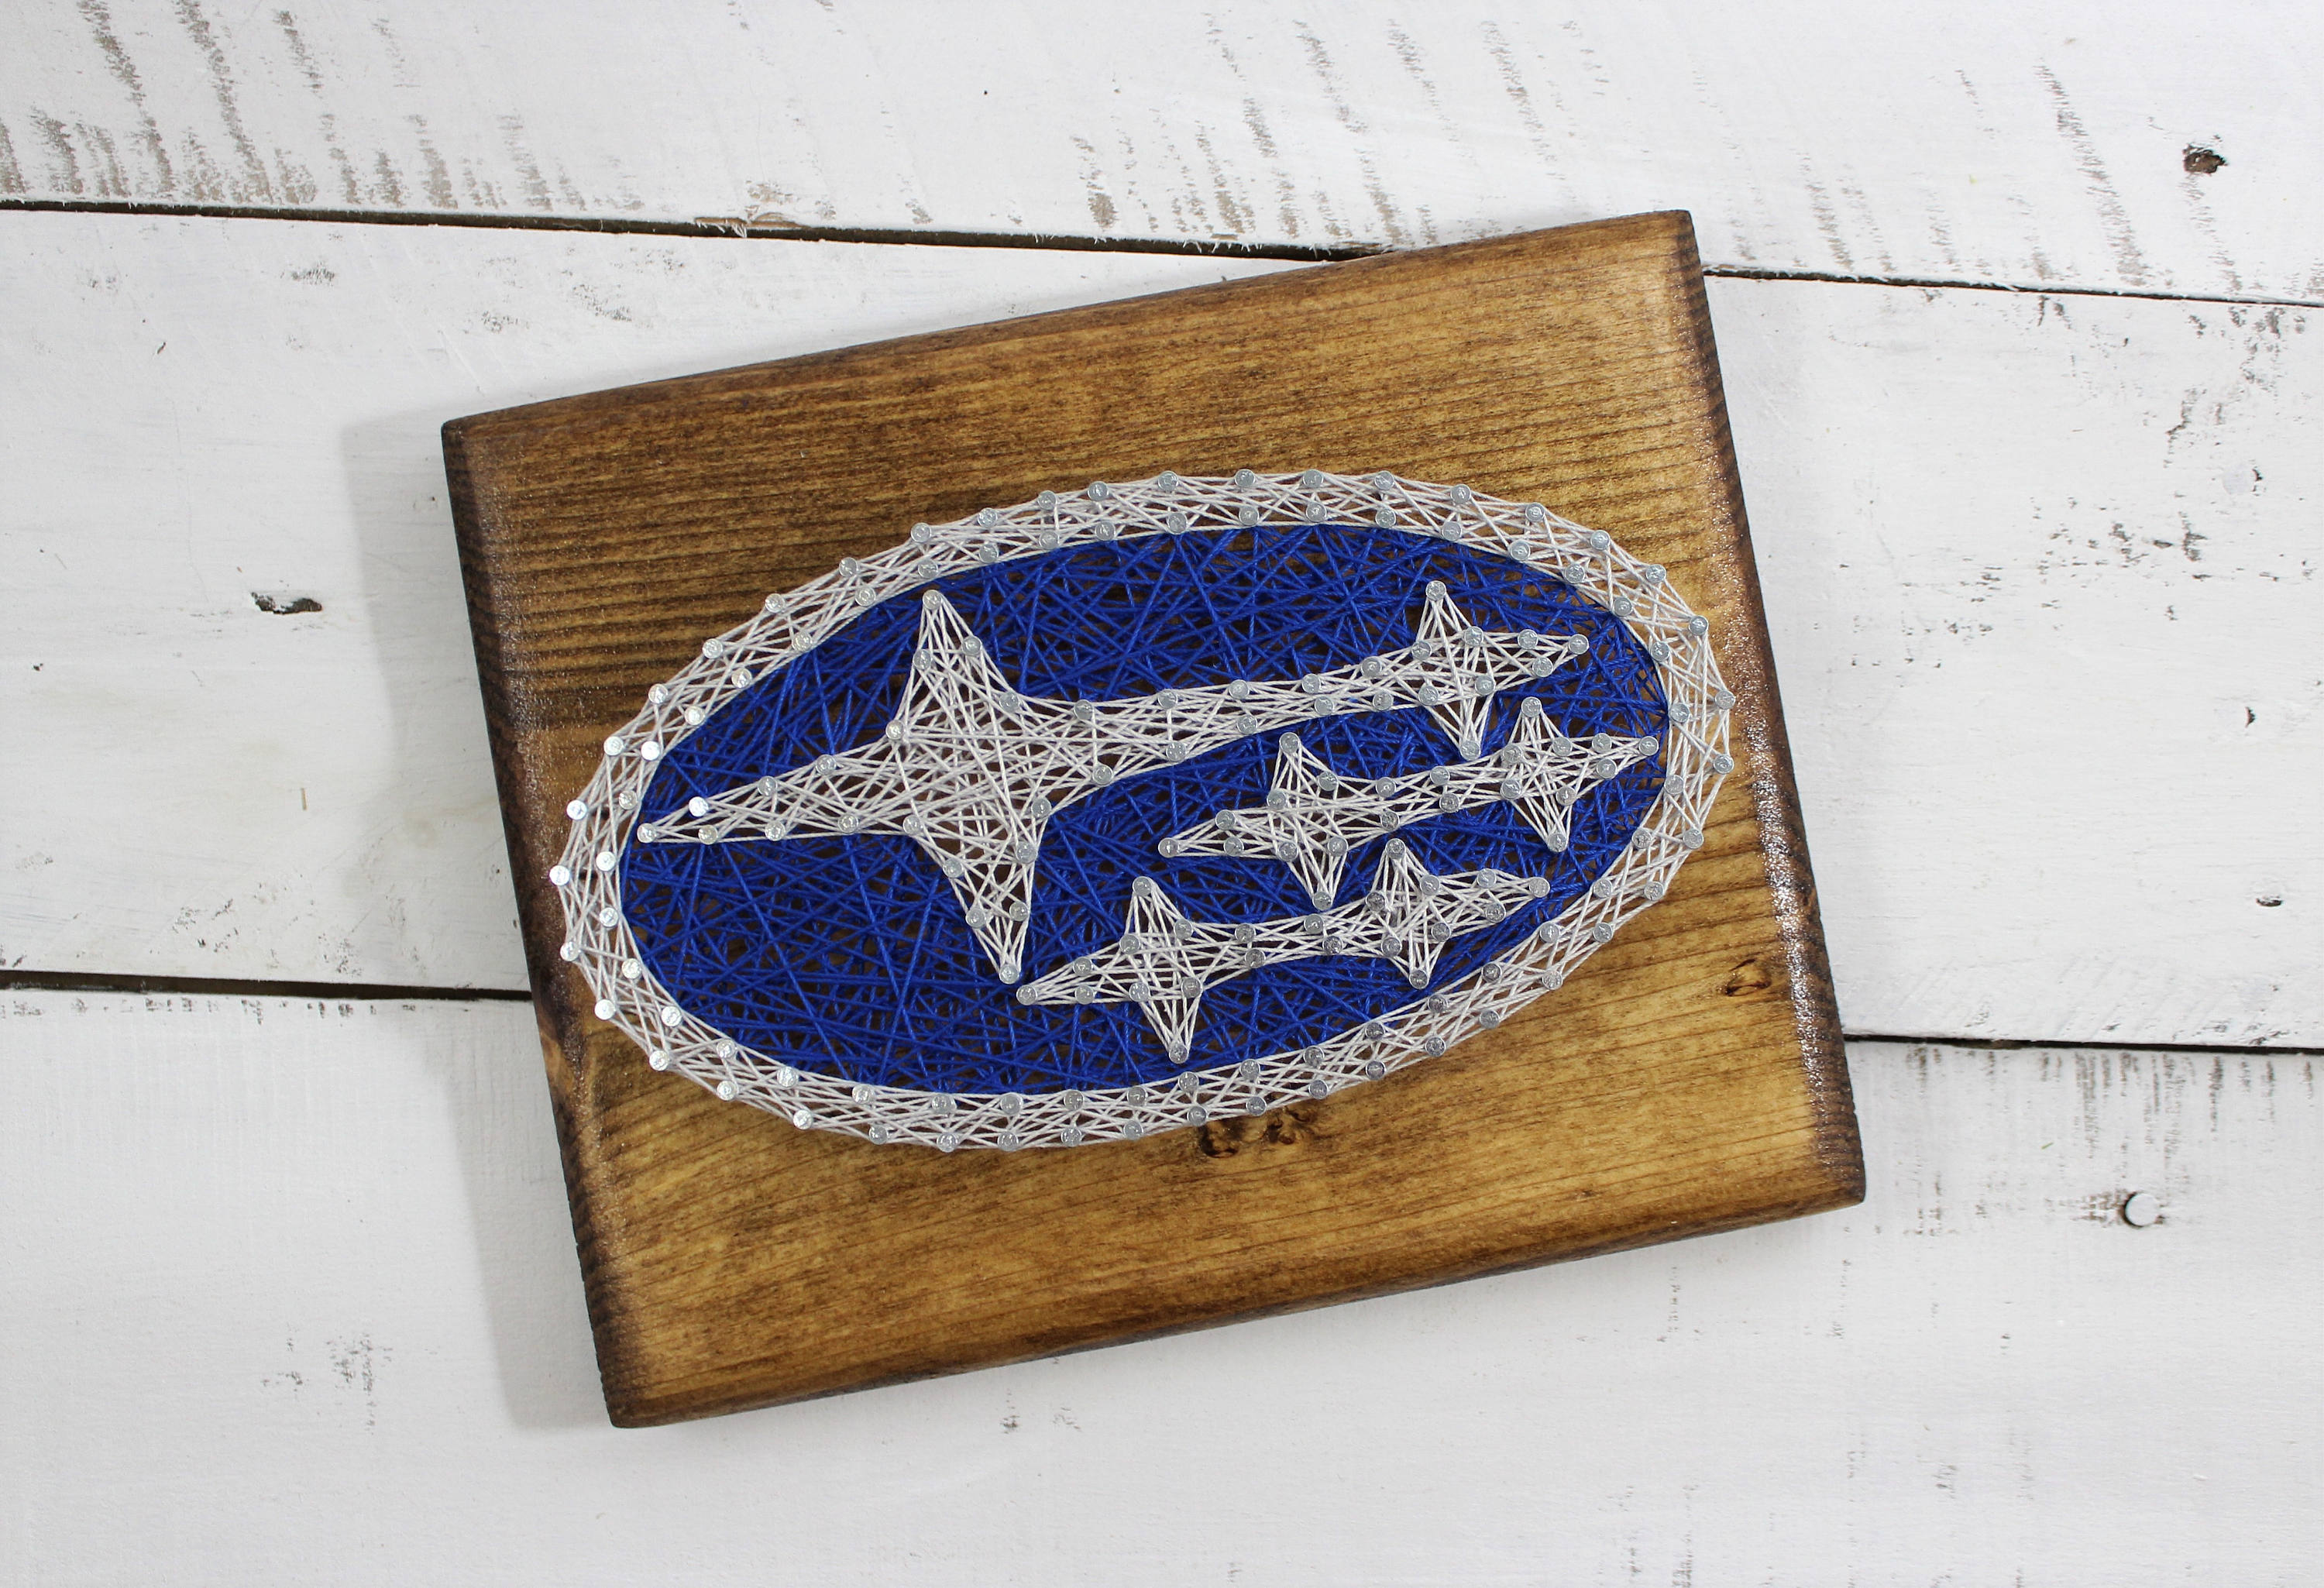 Subaru String Art